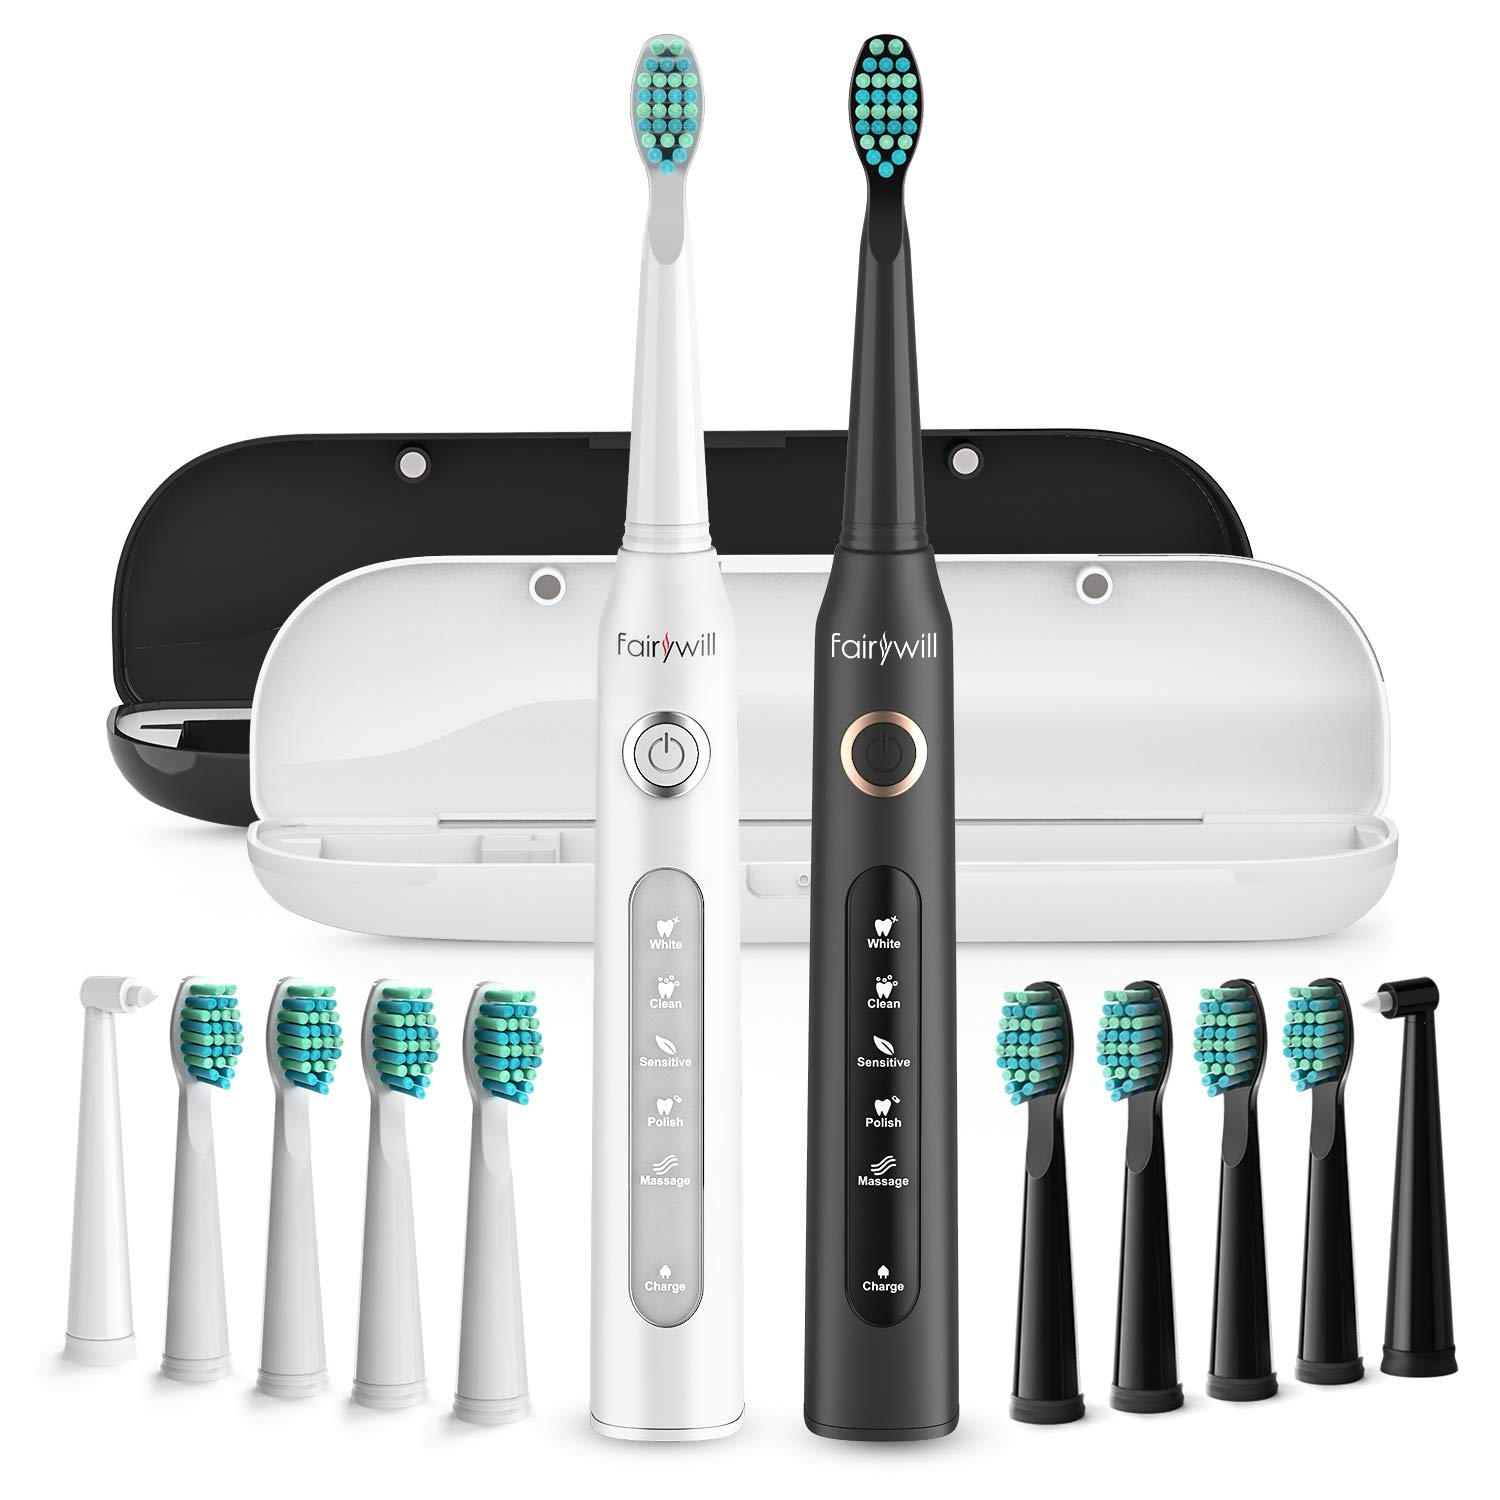 Fairywill Dual Sonic Powered Electric Toothbrush – Get A Dentist Like Clean With 5 Modes, Smart Timer, 10 Brush Heads 2 Travel Cases, Rechargeable with One 4 hr Charge Lasting 30 Days